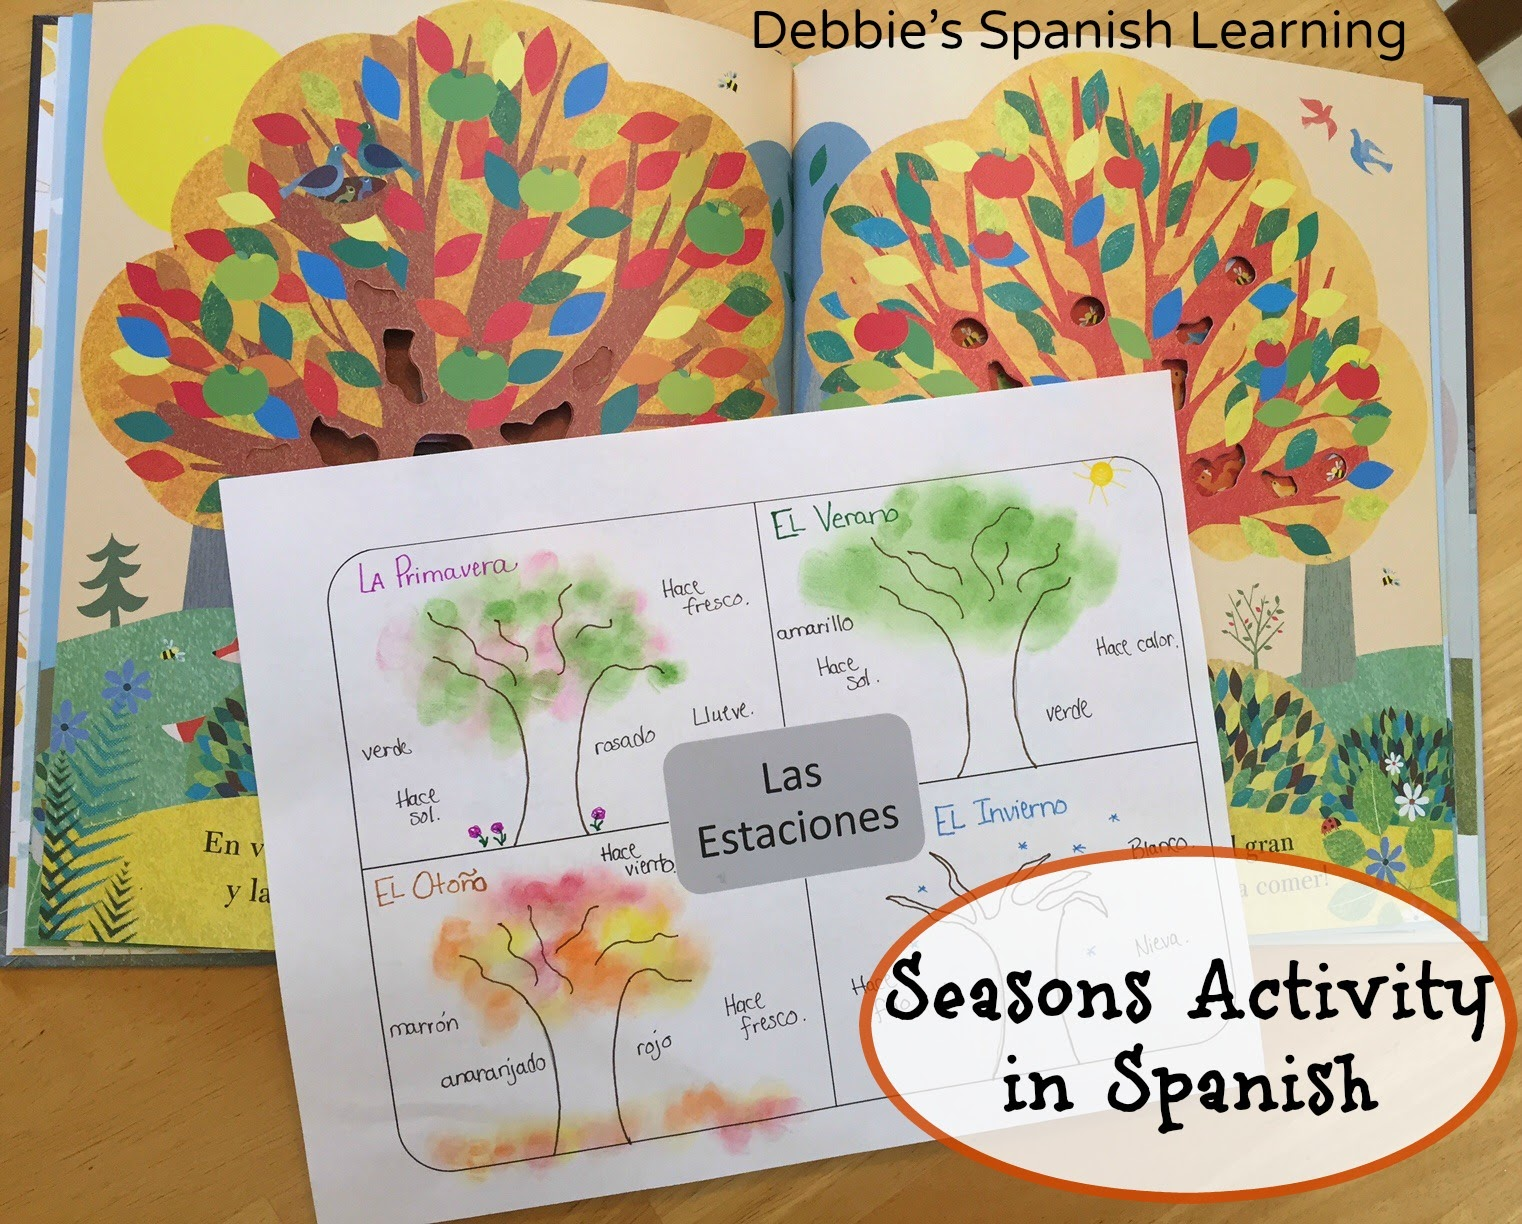 photo regarding Seasons Printable titled Debbies Spanish Discovering: Seasons Things to do in just Spanish